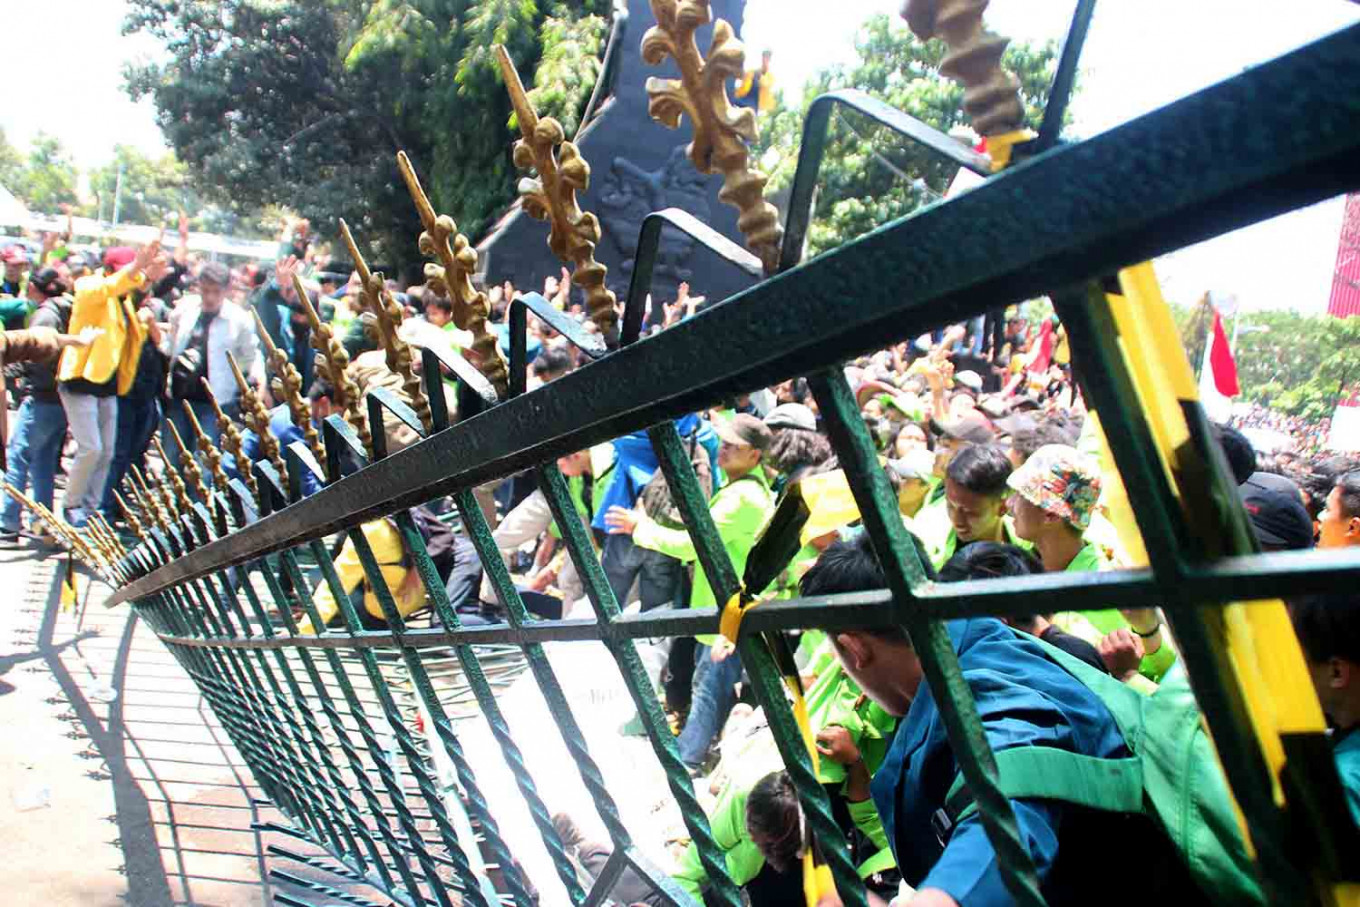 Thousands of university students in Semarang, Central Java, protest against the newly passed Corruption Eradication Commission (KPK) Law and the bill on the Criminal Code. They toppled the gate at the compound where the governor's office and the Central Java Legislative Council are located on Jl. Pahlawan, Semarang, on Sept. 24. JP/Suherdjoko